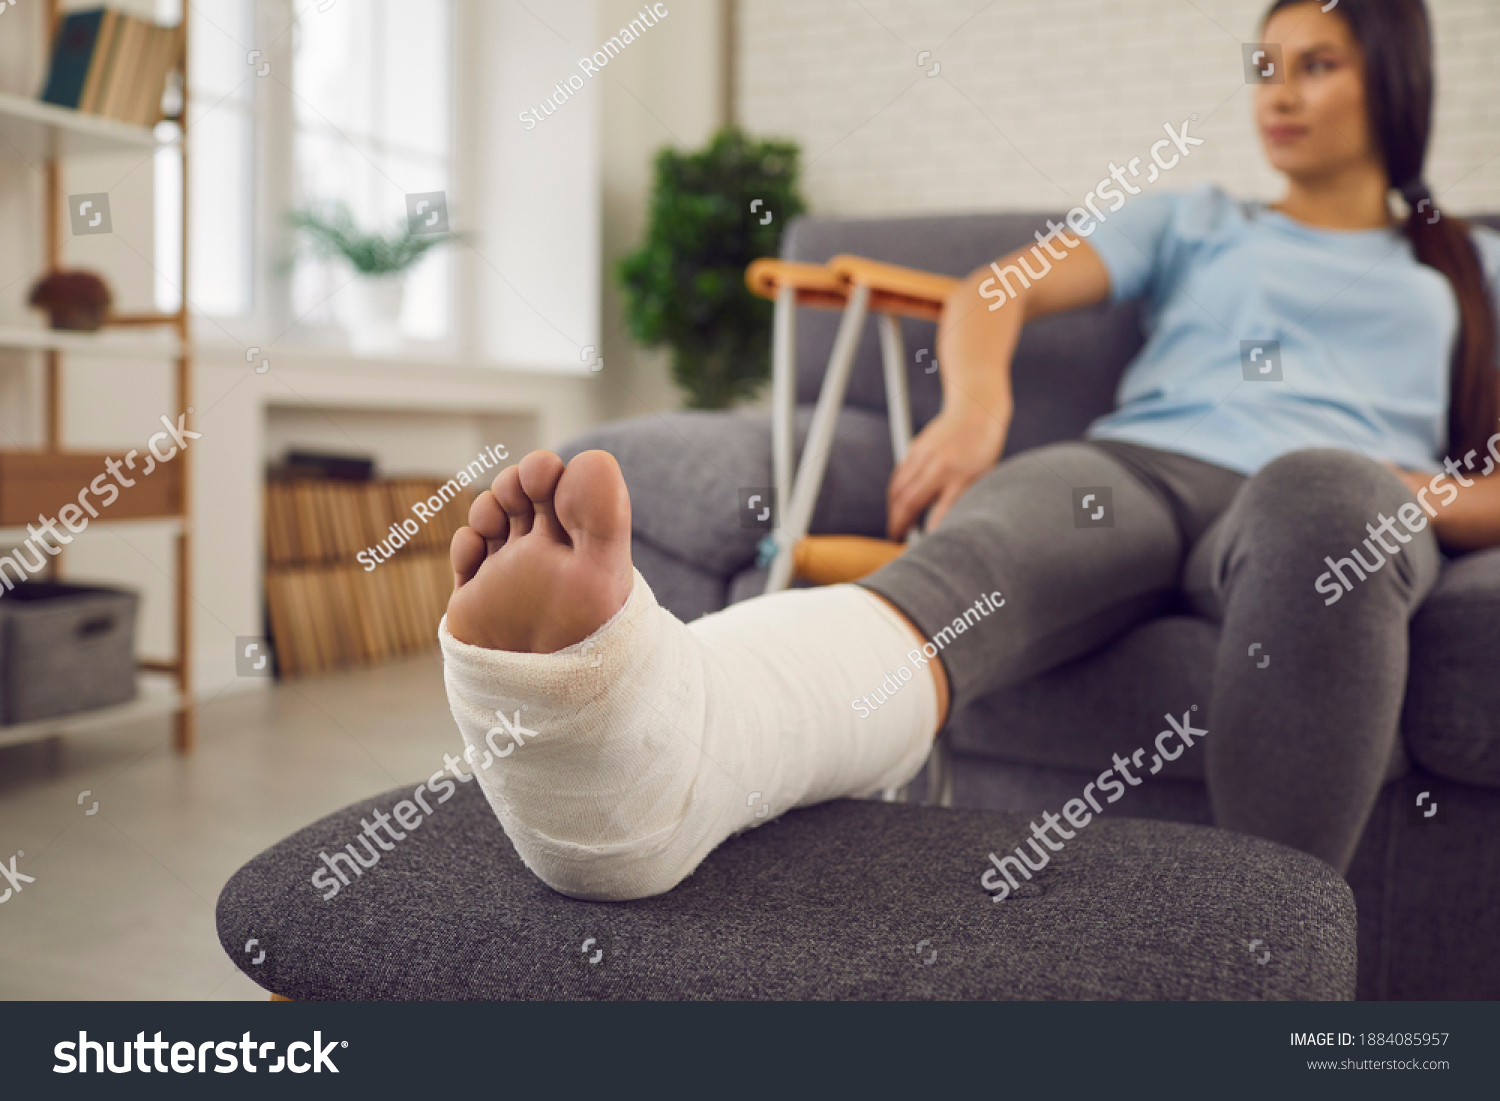 Concept of rehabilitation of people after serious physical accident injury. Female patient with broken leg in plaster cast sitting on sofa. Young woman with foot bone fracture resting on couch at home #1884085957